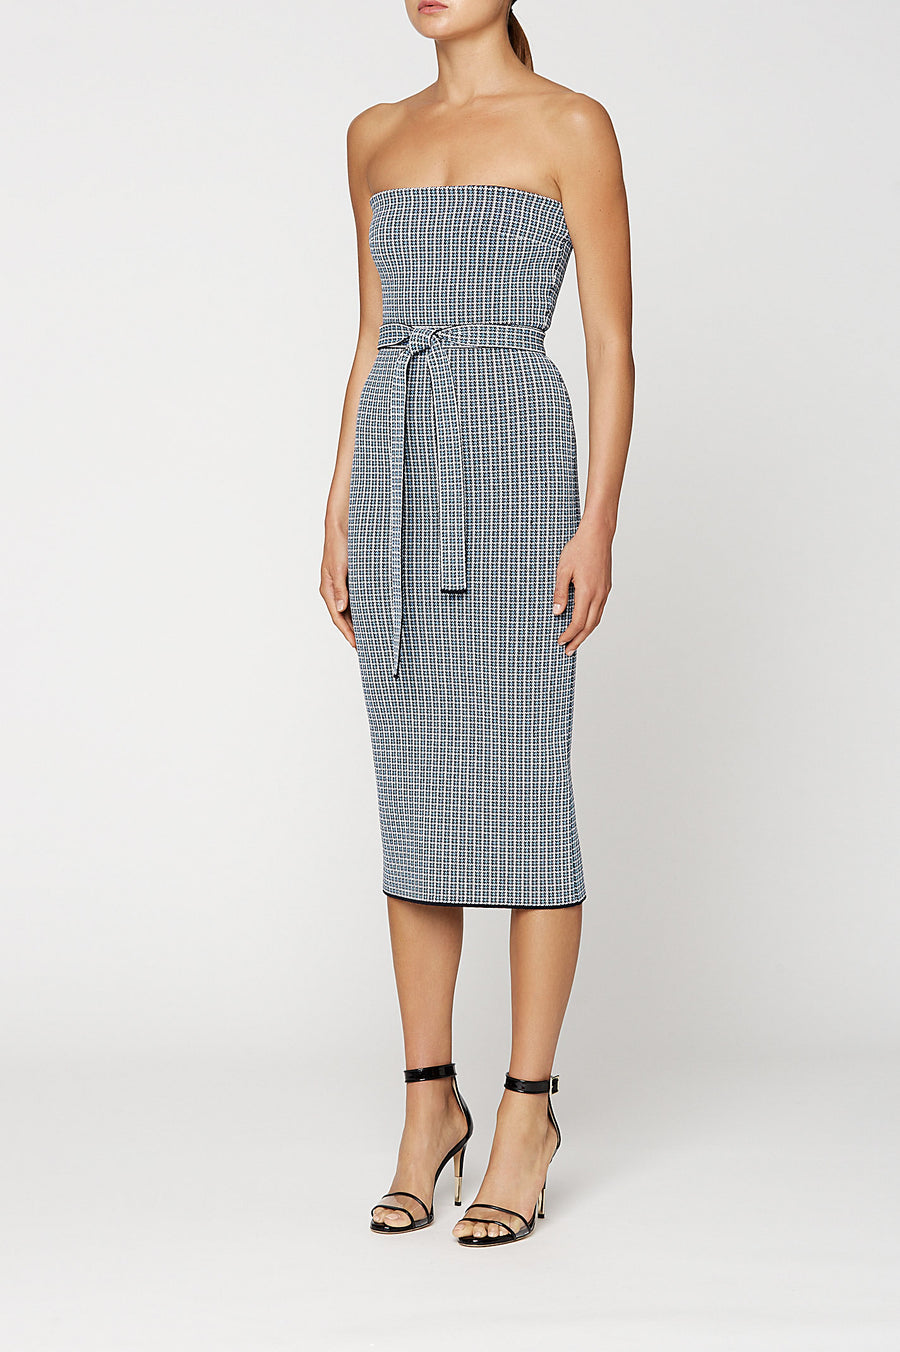 CREPE KNIT PLAID STRAPLESS DRESS, PALE BLUE color